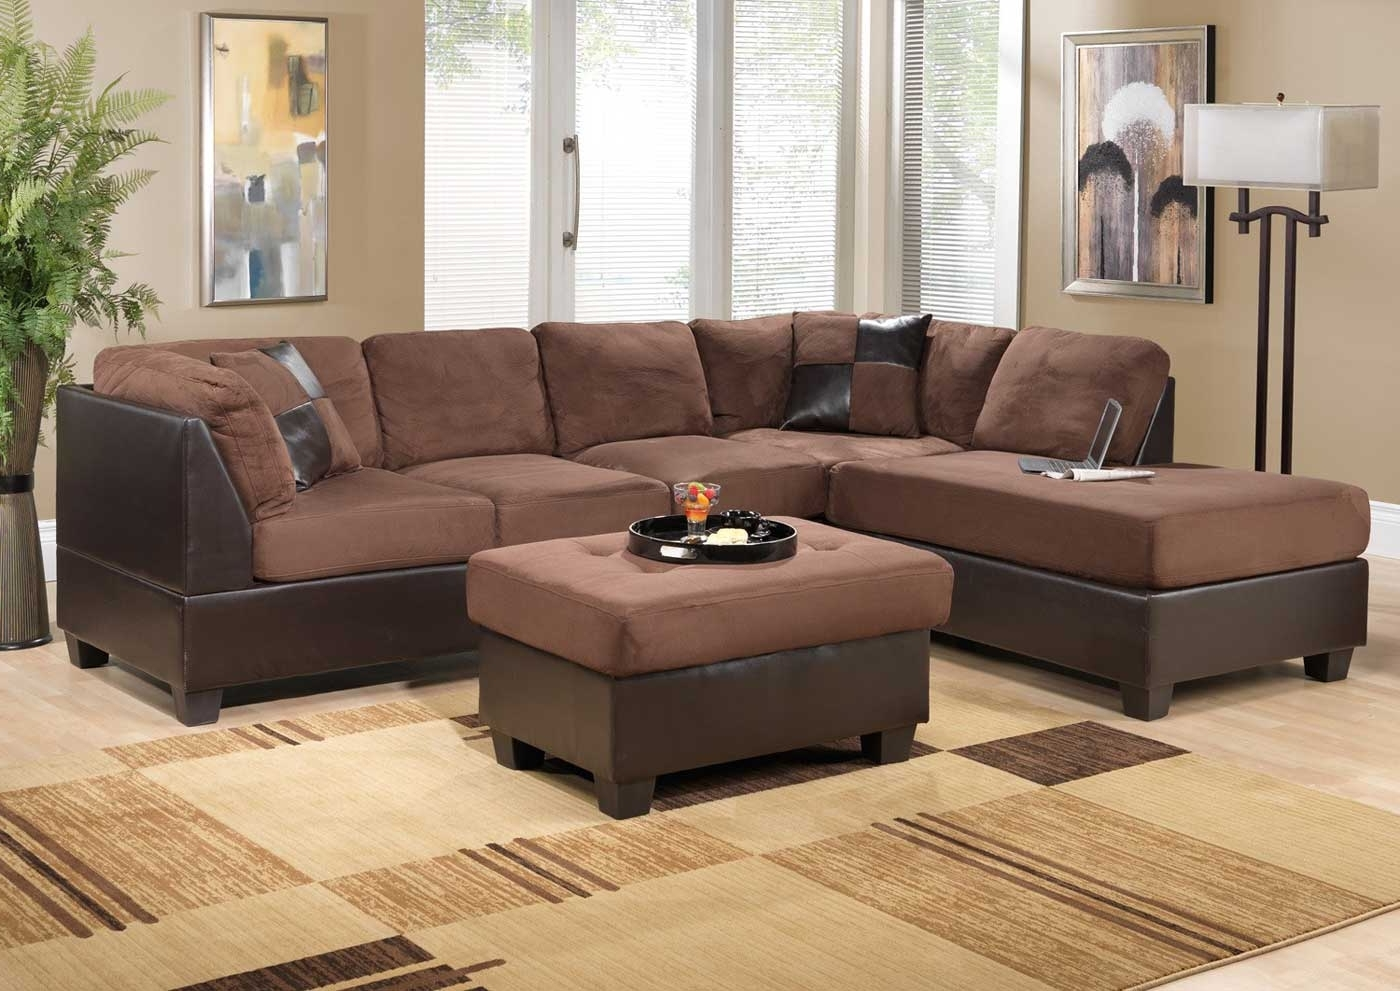 Preferred Greenville Nc Sectional Sofas Intended For Furniture : Sectional Sofa Sizes Buy Sectional Vancouver Corner (View 6 of 15)